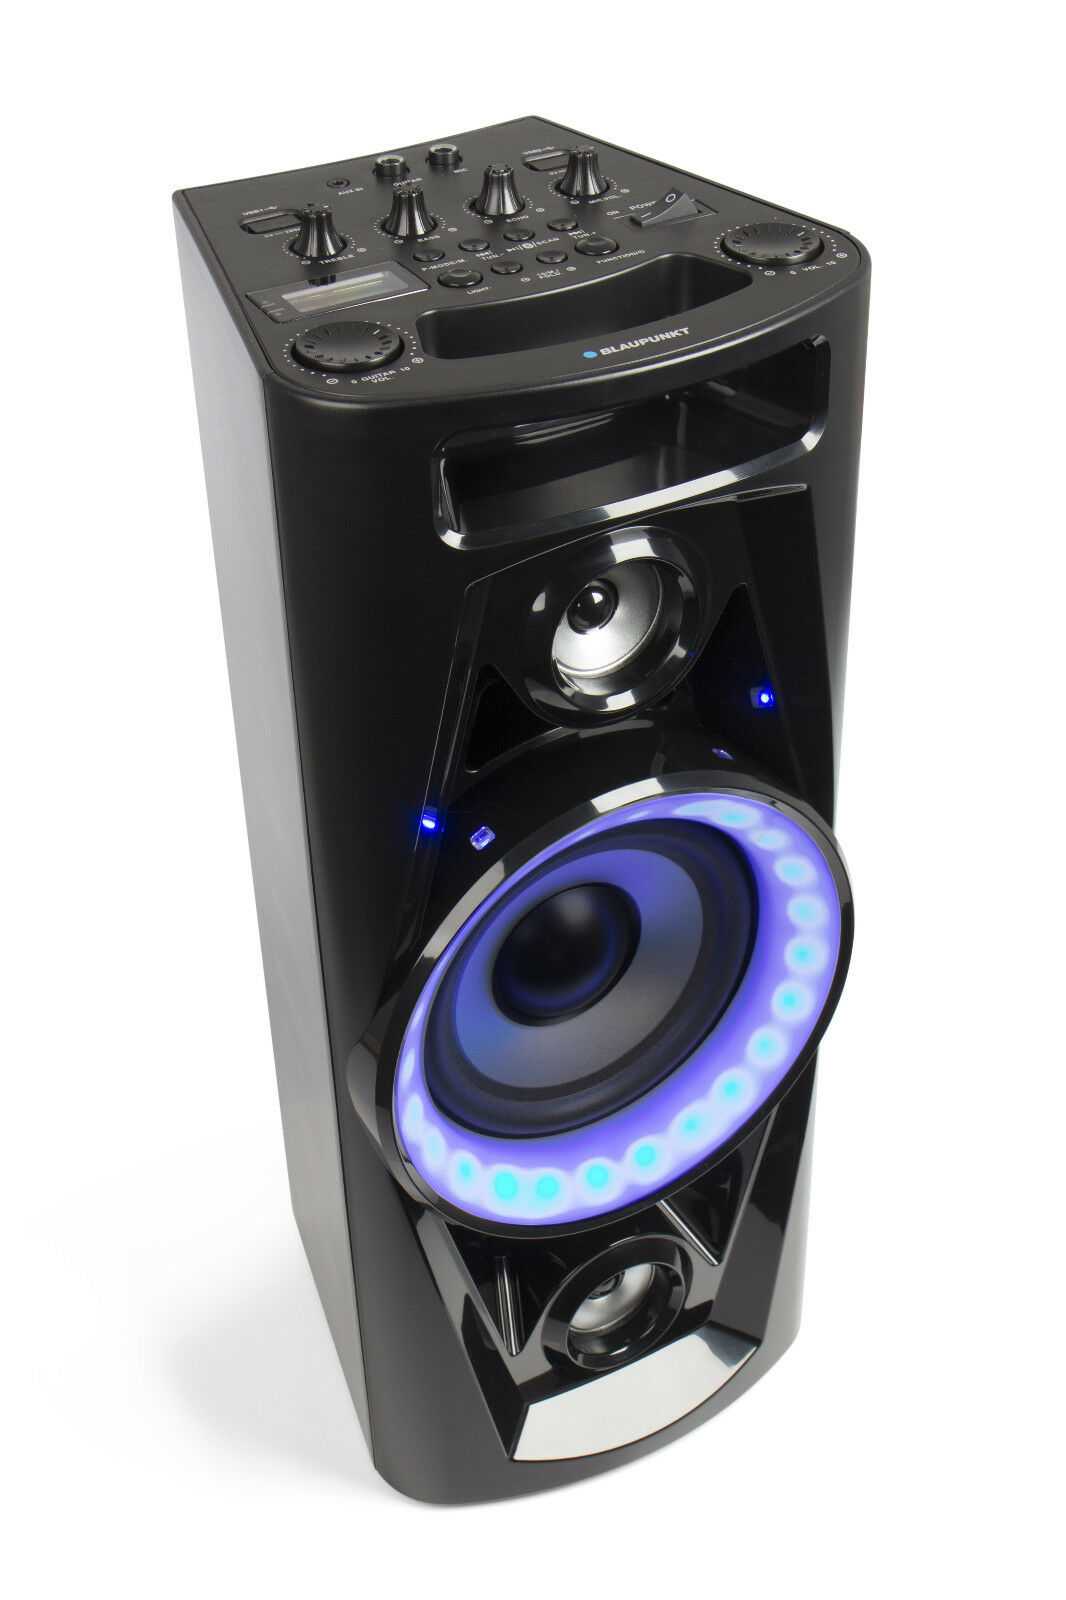 blaupunkt bluetooth lautsprecher party speaker box psk1652 radio pll usb mp3 aux eur 129 95. Black Bedroom Furniture Sets. Home Design Ideas